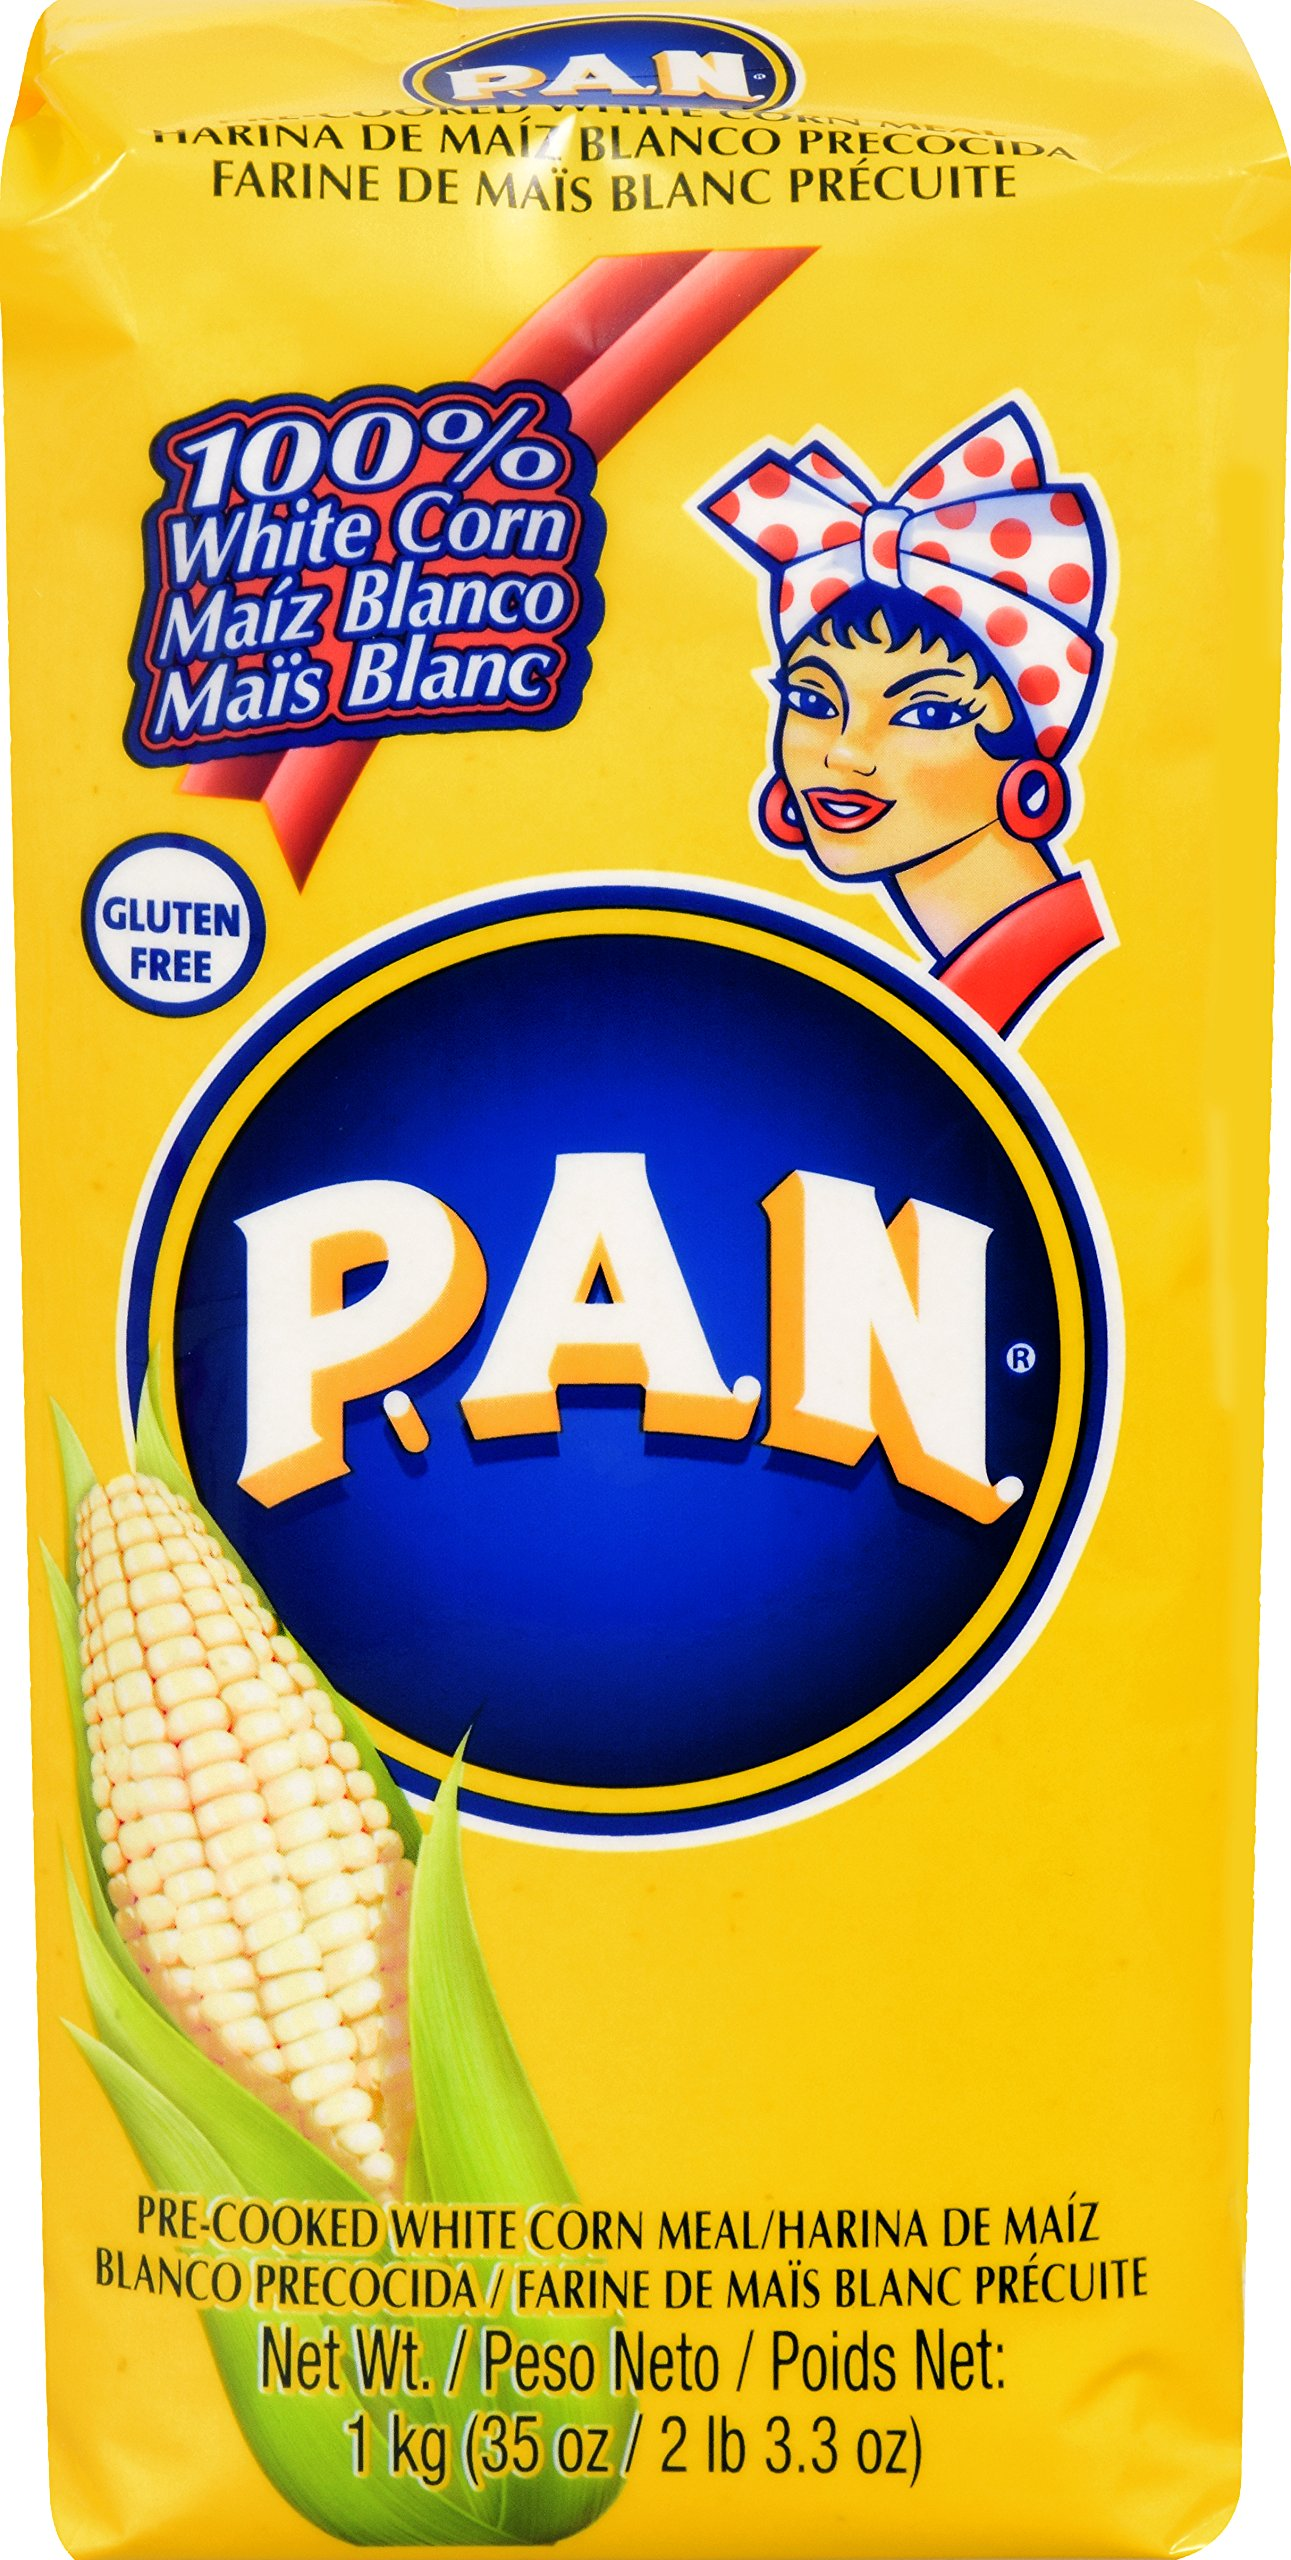 P.A.N. White Corn Meal – Pre-cooked Gluten Free and Kosher Flour for Arepas, 1 Kilogram (35 Ounces / 2 Pounds 3.3 Ounces) (Pack of 10)